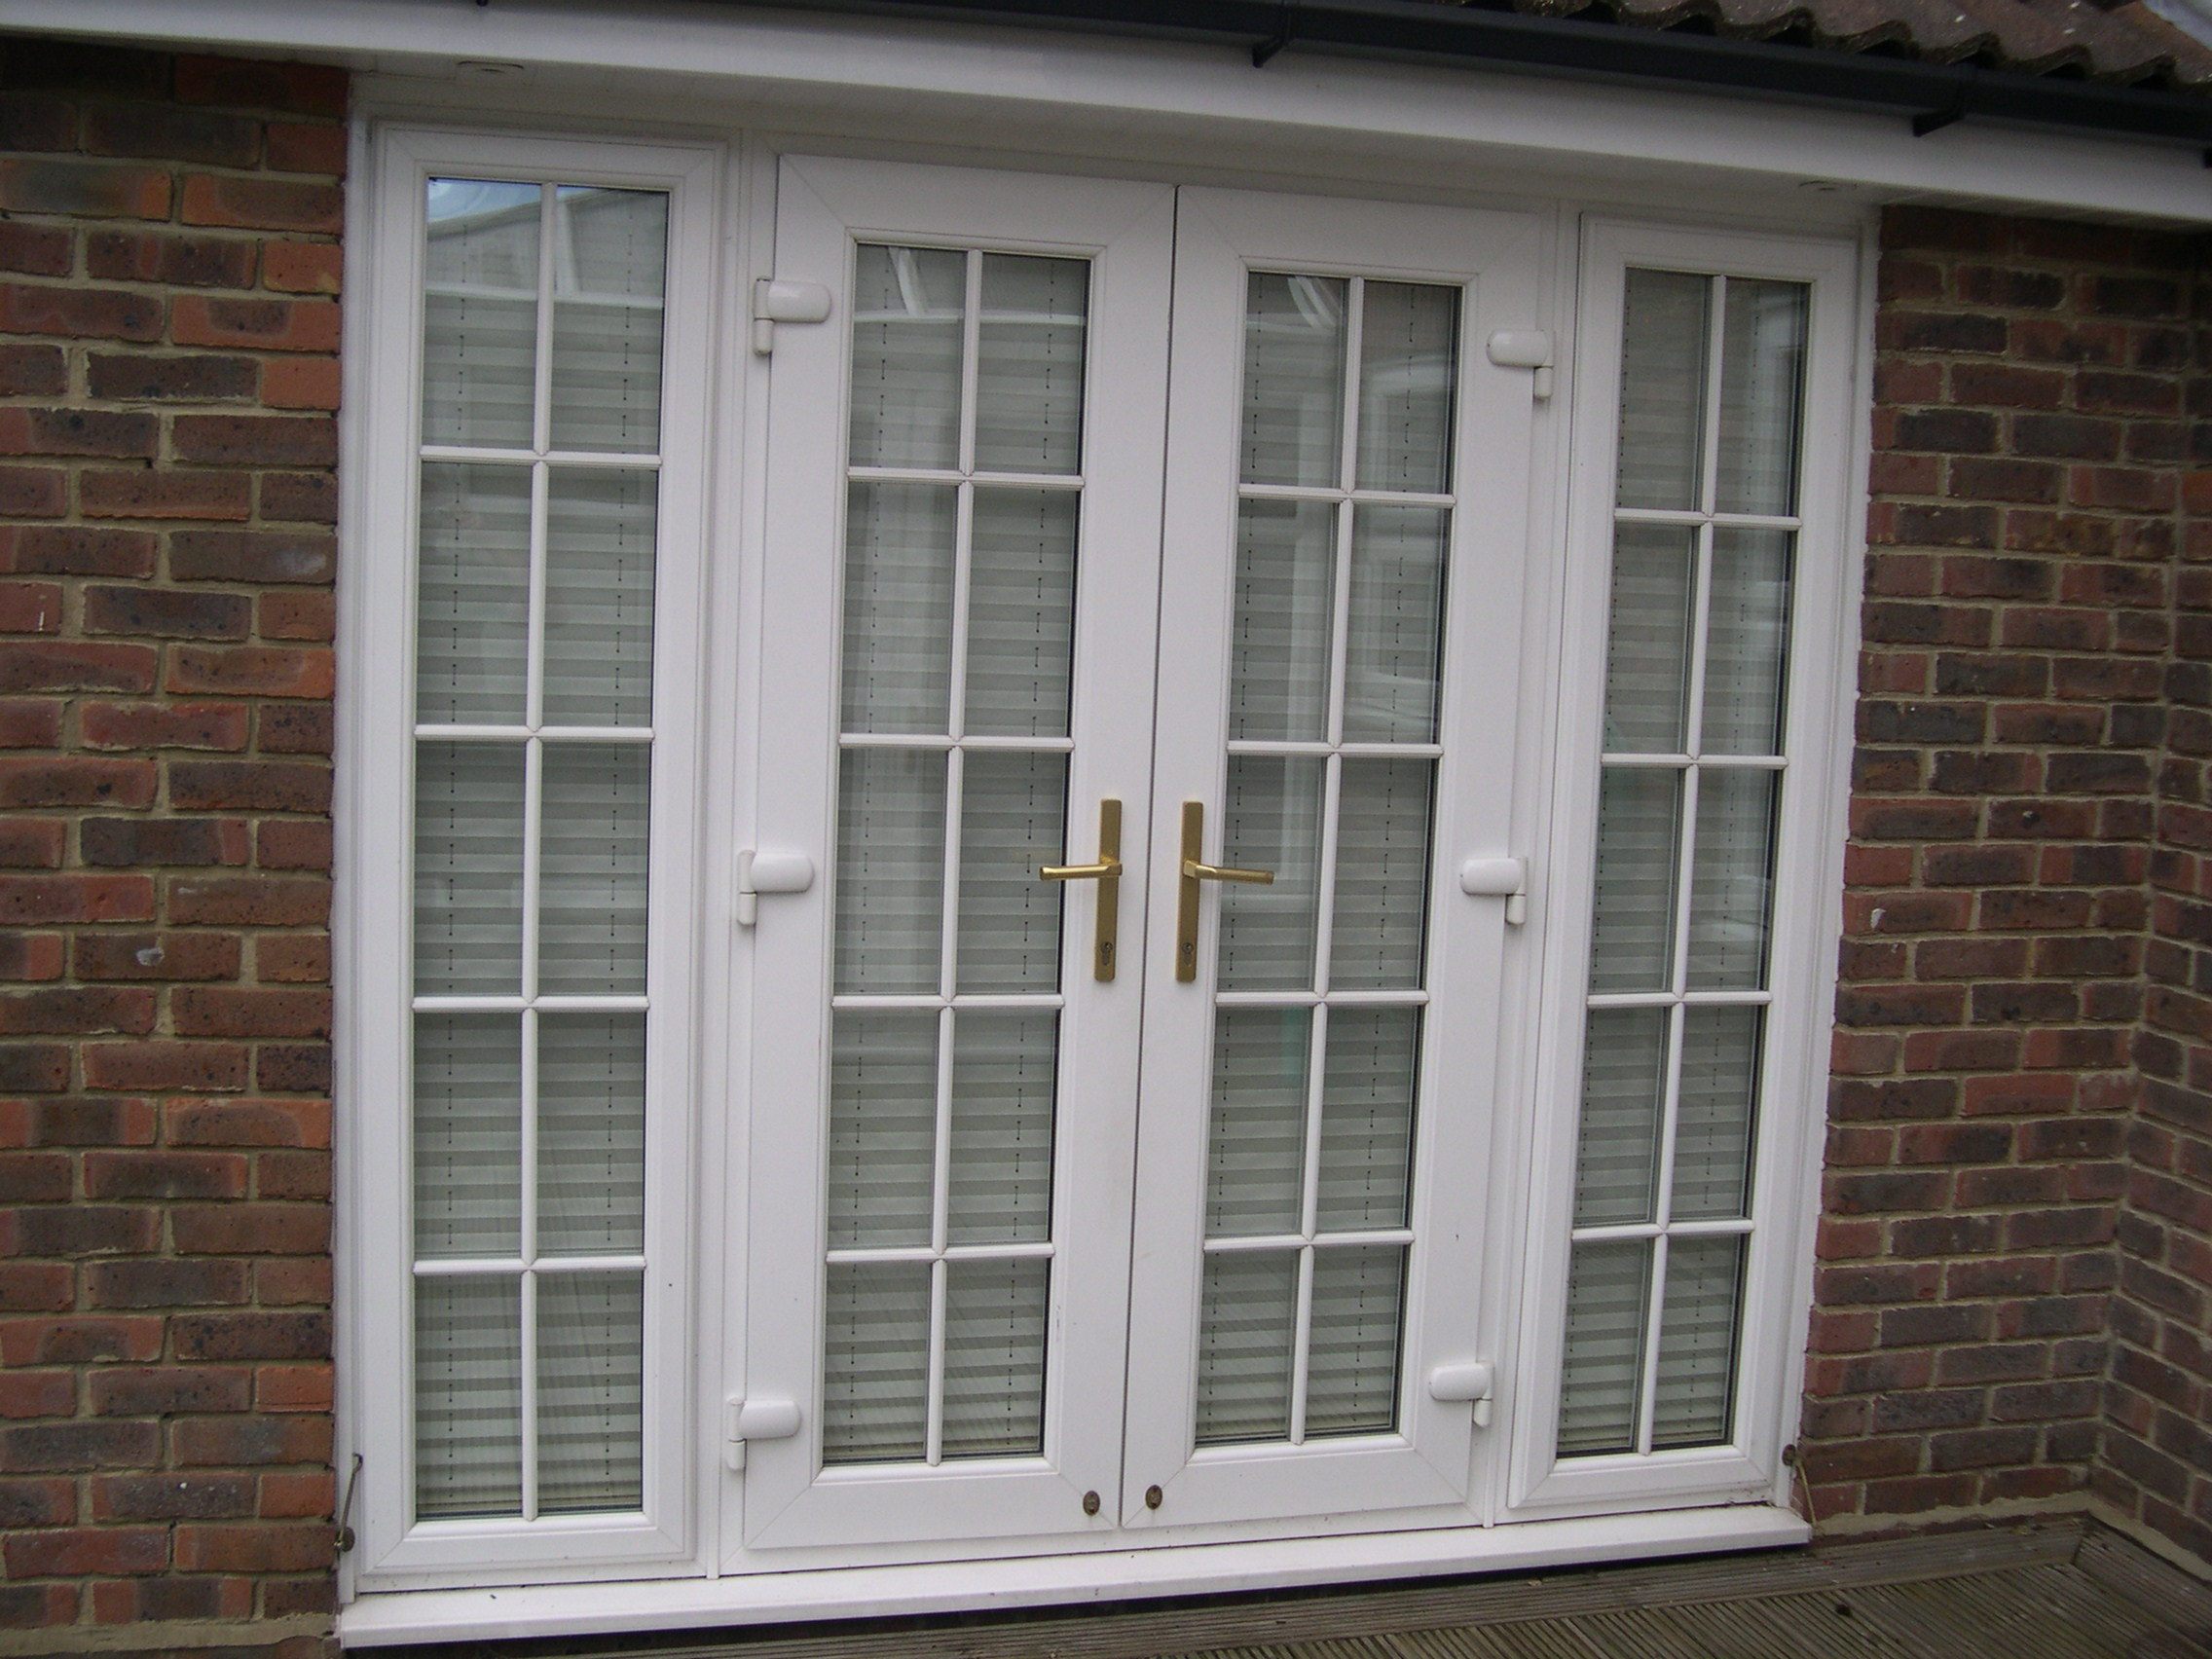 New upvc patio door jcs external solutions for Patio doors uk